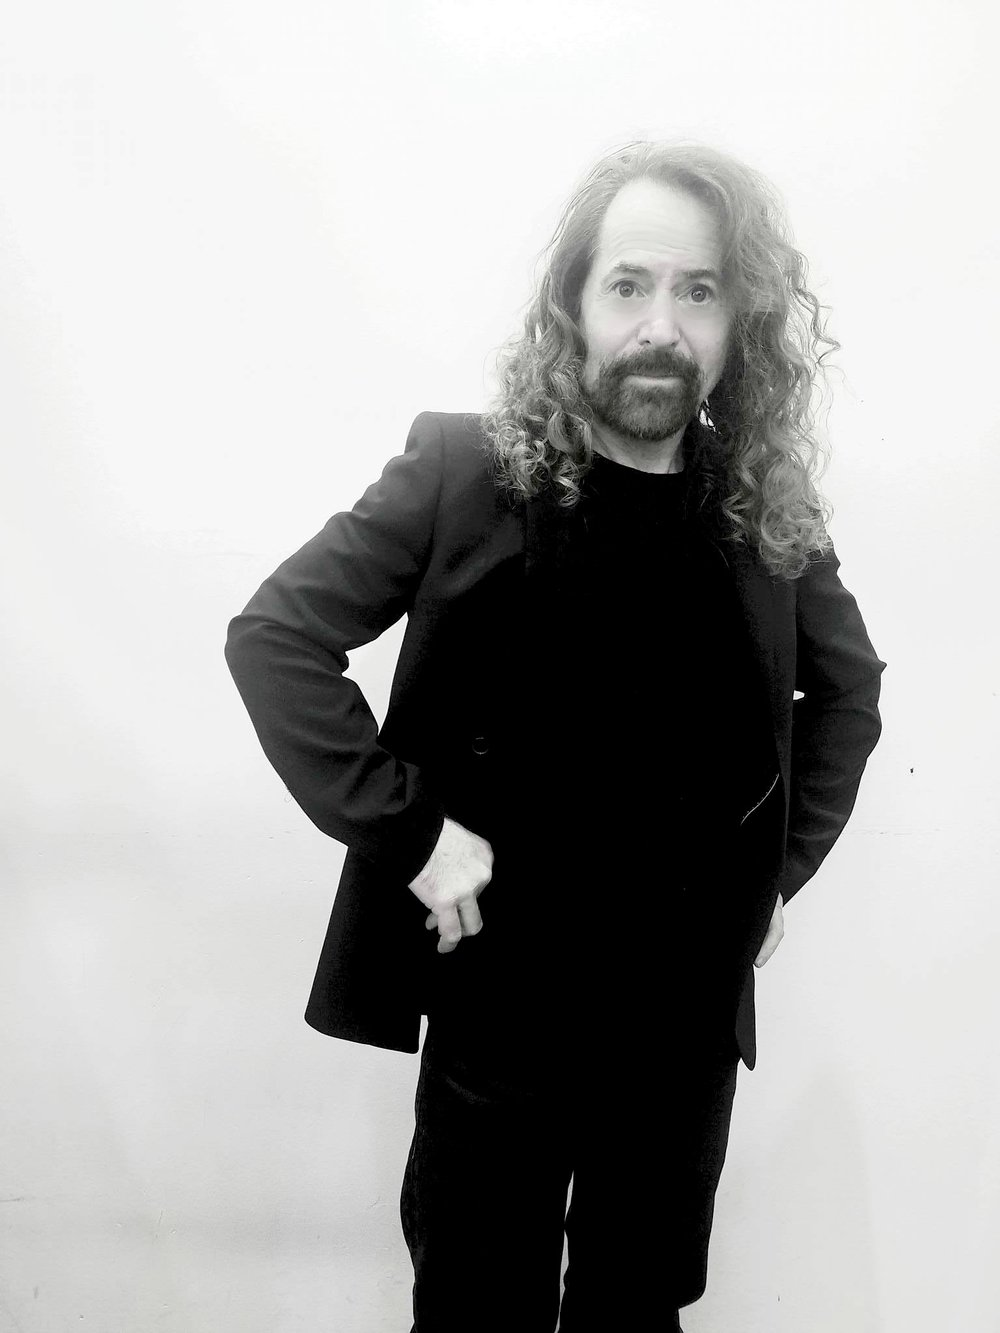 Paco Lechner                                              Hair Stylist/Manager   30 Years Experience   Hometown: Brooklyn, NY